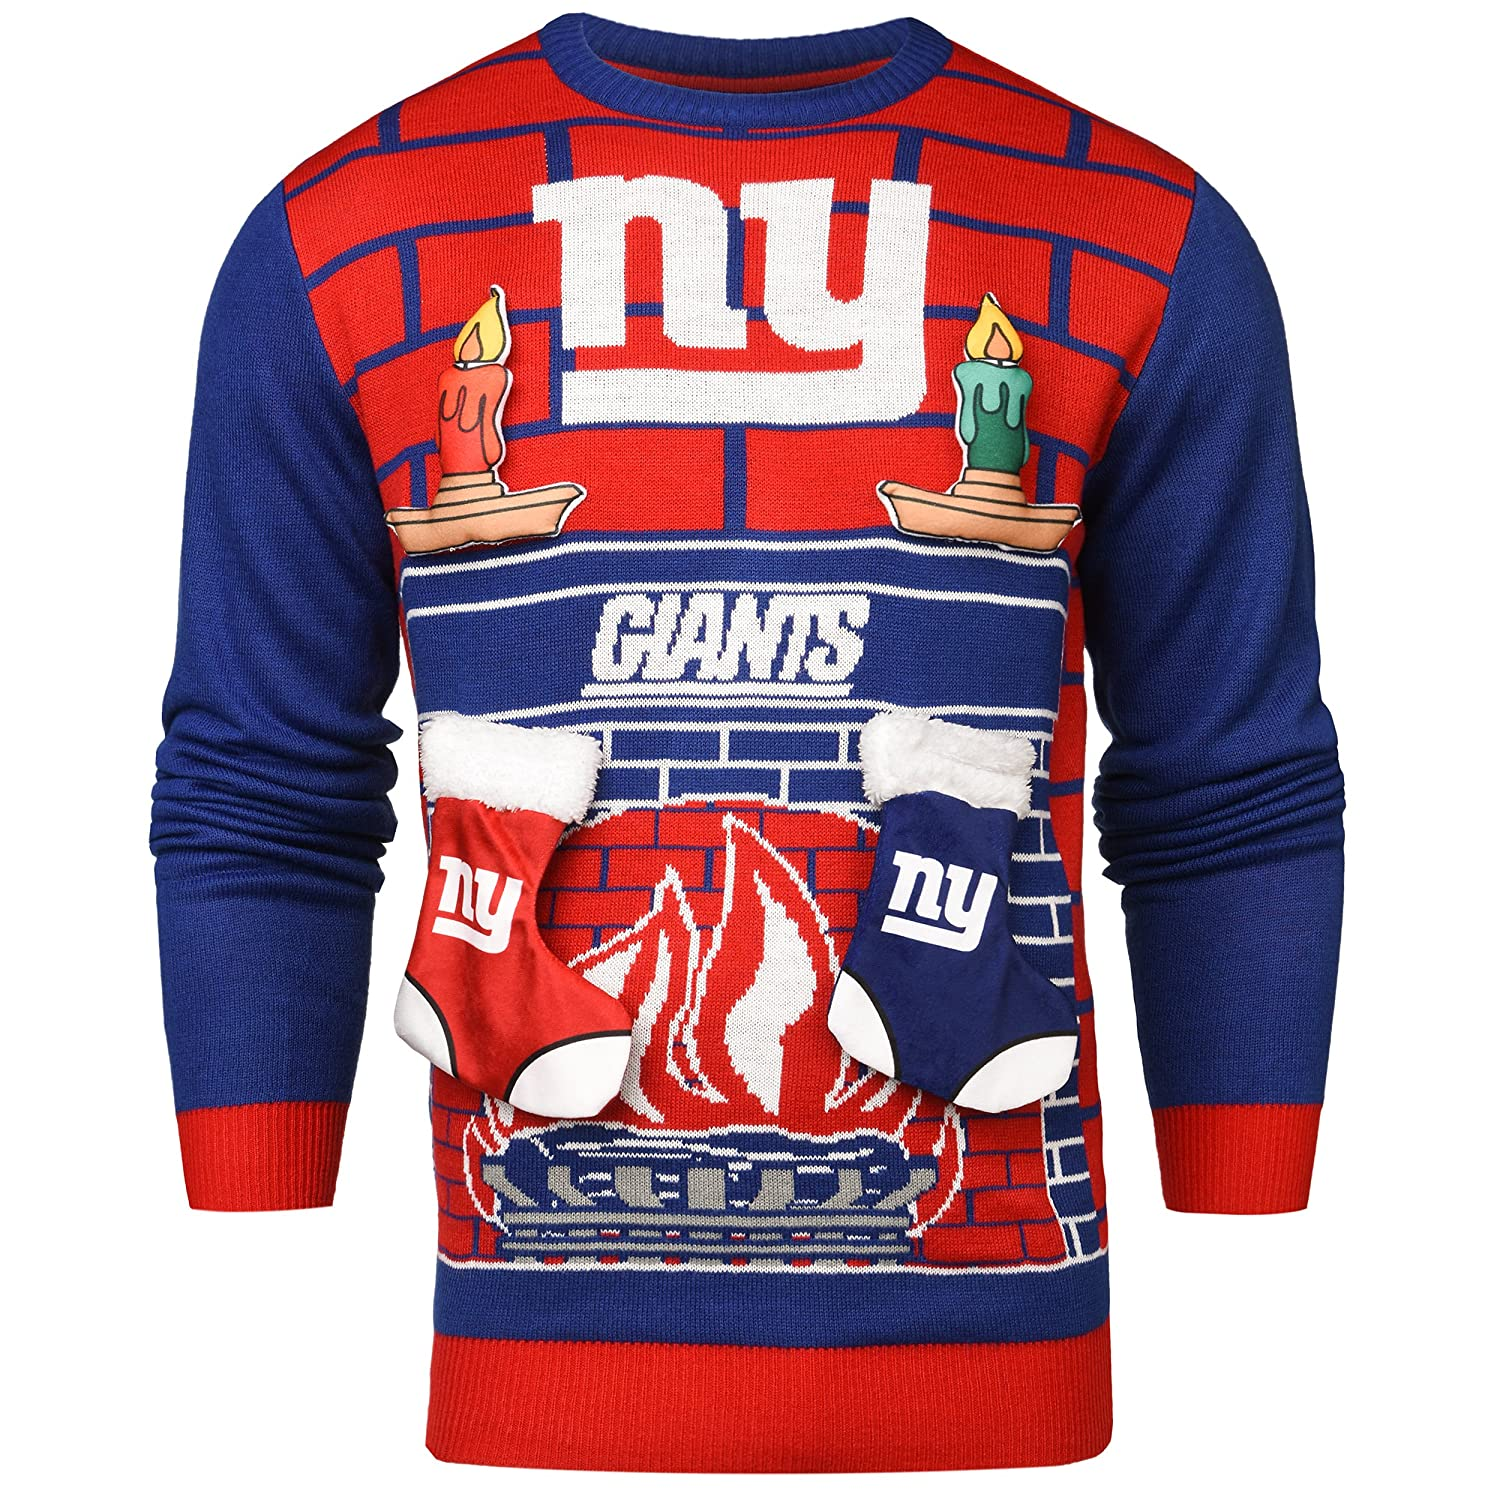 Amazon.com : FOCO New York Giants Ugly 3D Sweater - Mens Large ...